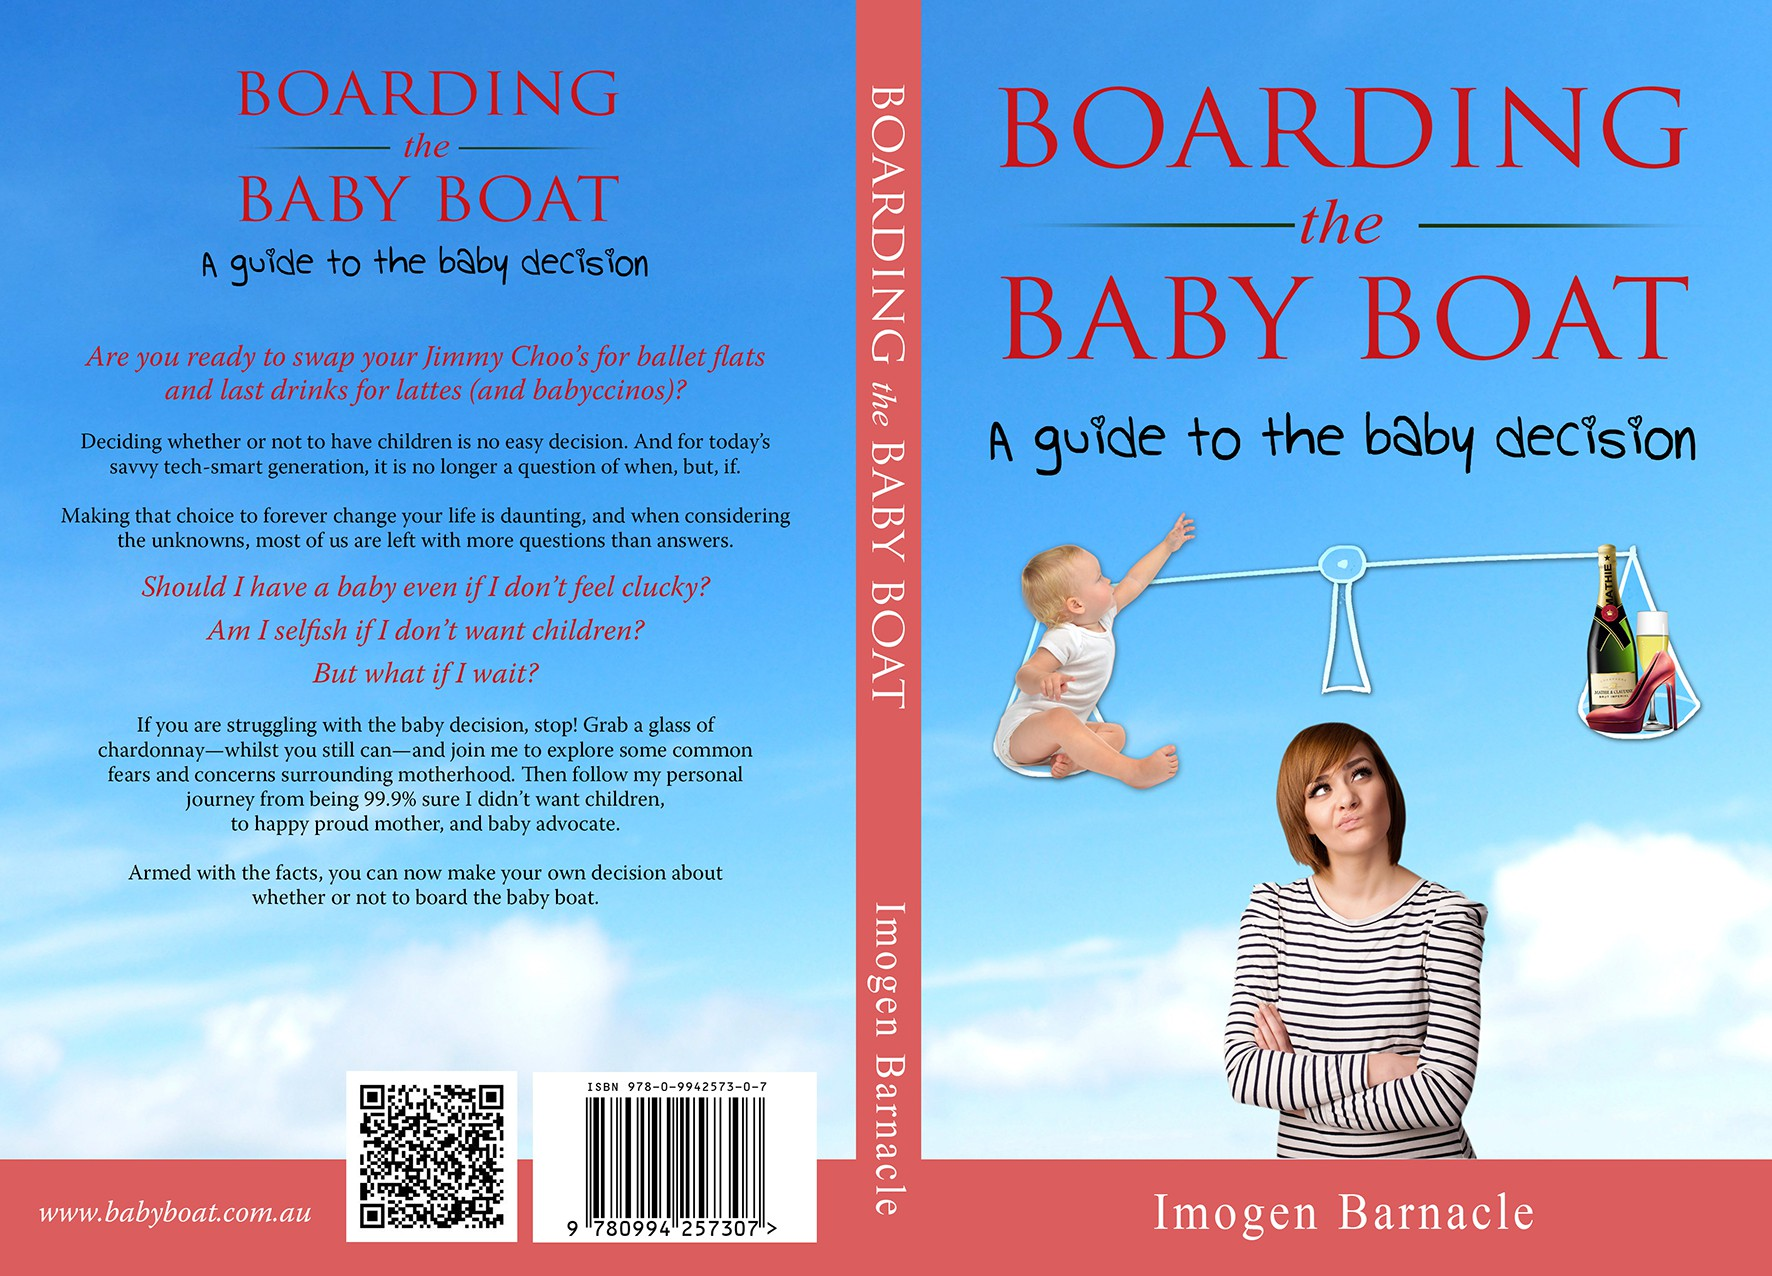 Create a modern, savvy, sophisticated design for women struggling with the baby decision